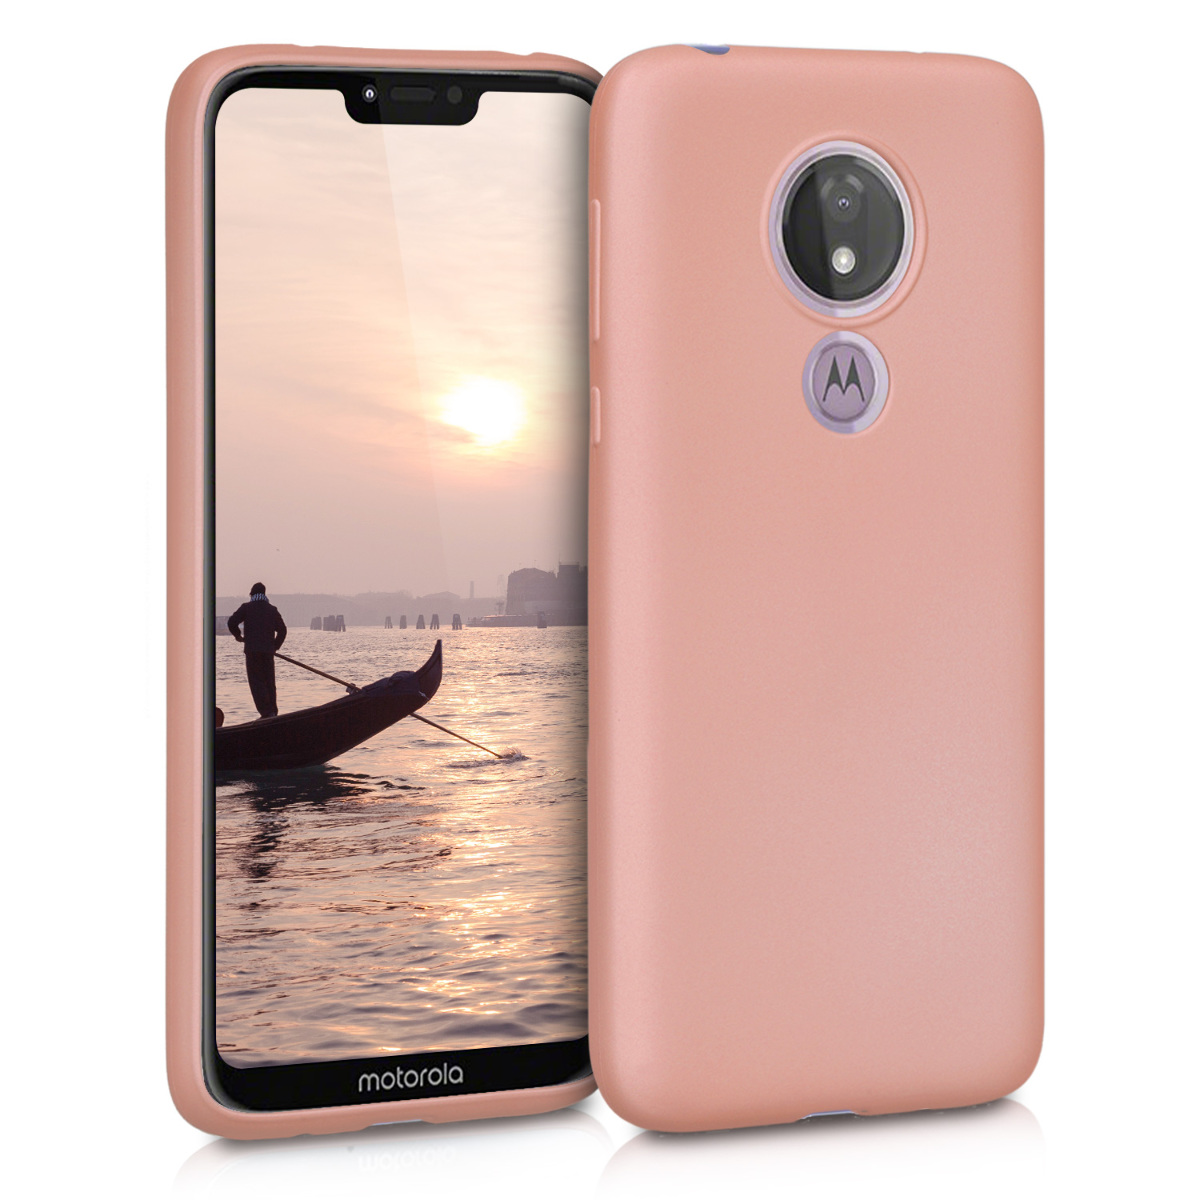 KW Θήκη Σιλικόνης Motorola Moto G7 Power - Metallic Rose Gold (47757.31)